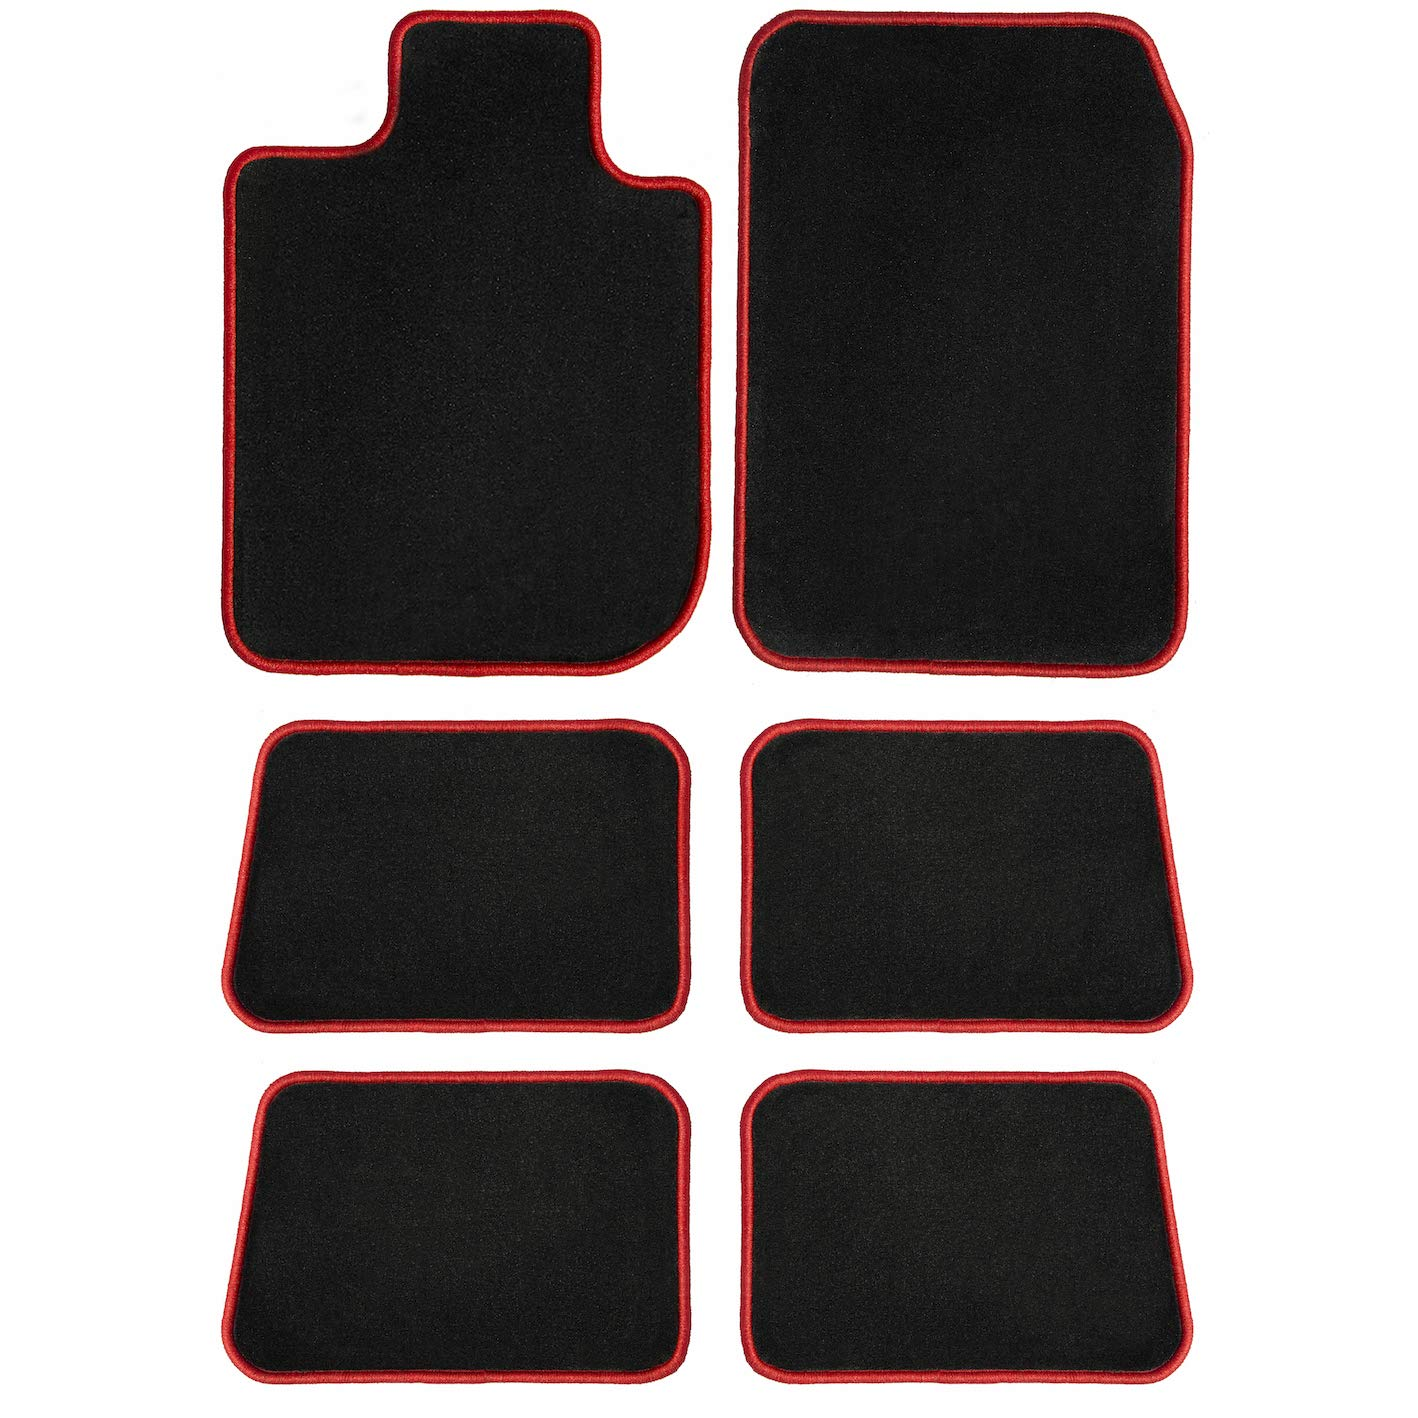 2nd /& 3rd Row 2011 GGBAILEY D3586A-LSD-BLK/_BR Custom Fit Car Mats for 2007 Passenger 2009 2012 Mazda CX-9 Black with Red Edging Driver 2008 2010 6 Piece Floor